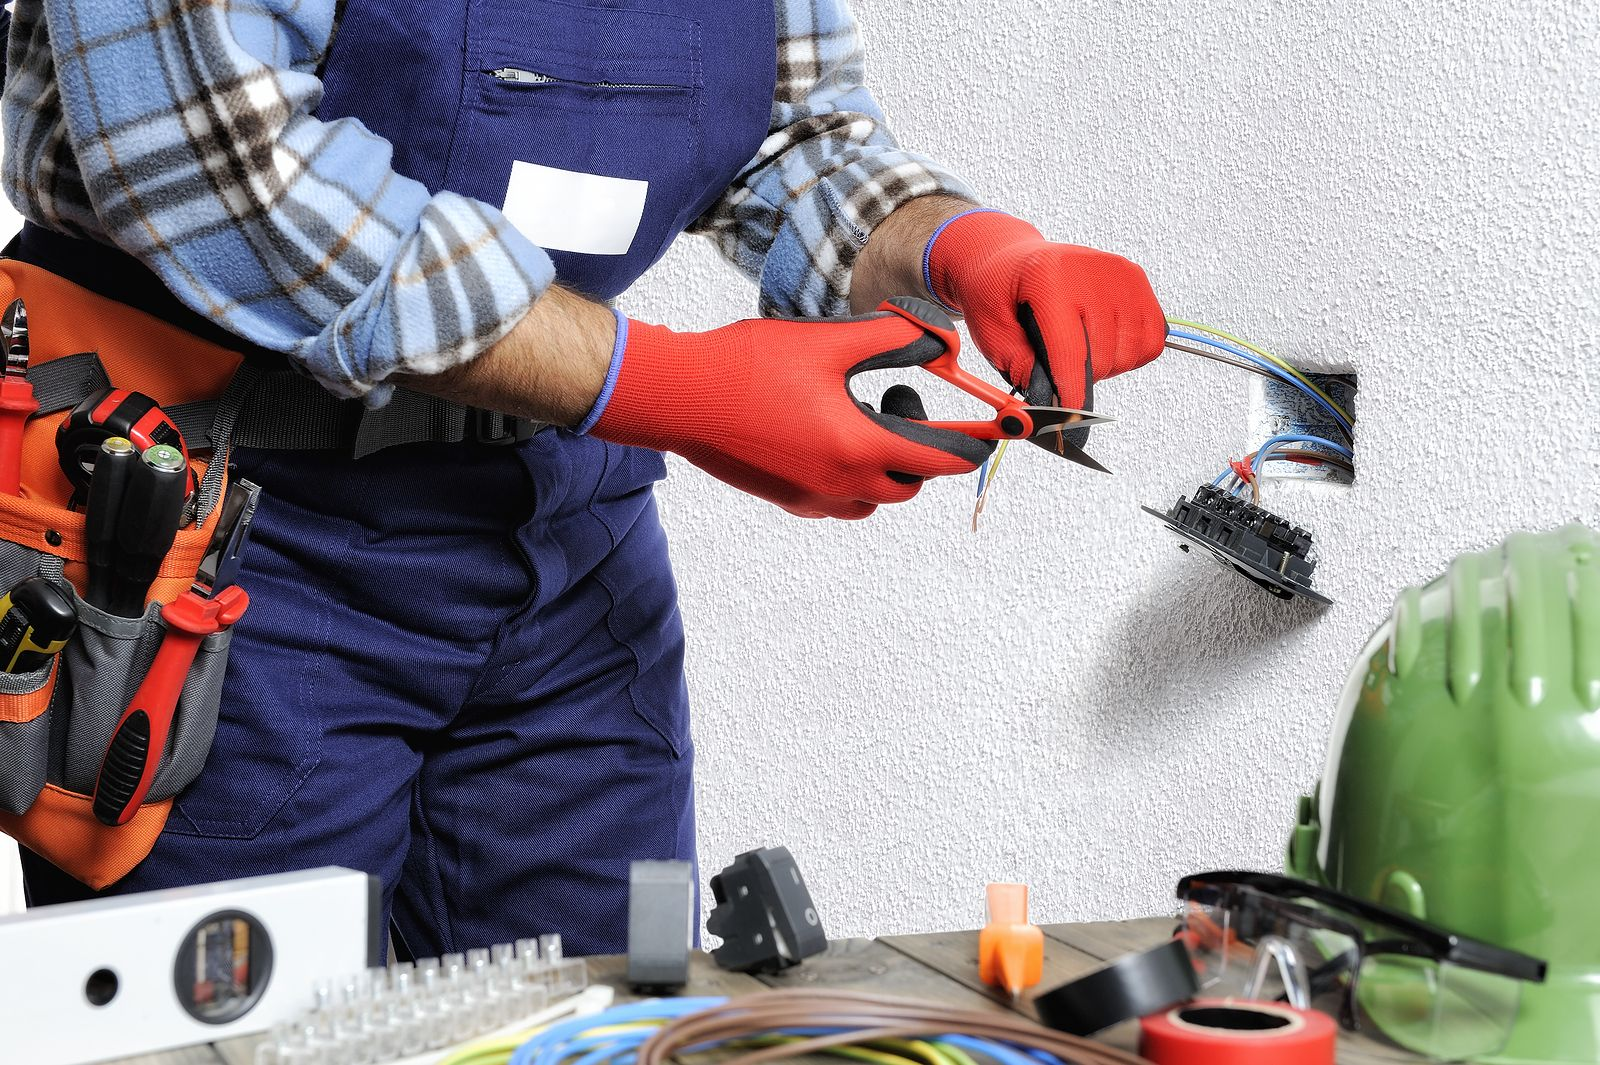 Are You a Landlord? Then Hire an Electrical Contractor for the Best Service and Rates